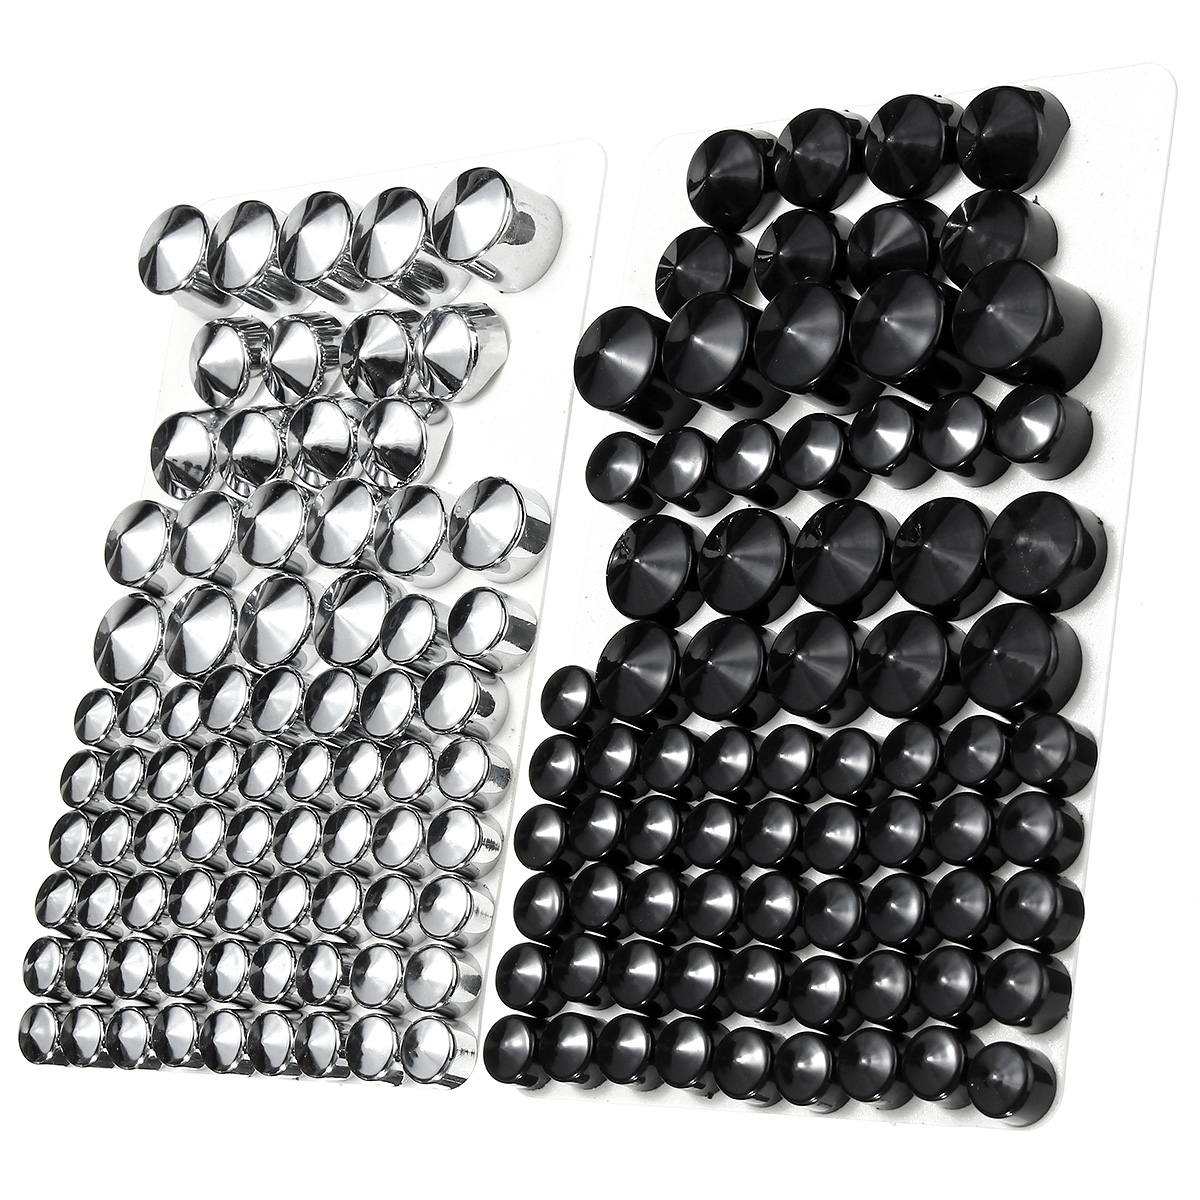 76pcs Motorcycle Screw Bolt Topper Caps Cover For Harley-Davidson Twin Cam/Dyna 1991-2013 Chrome Black76pcs Motorcycle Screw Bolt Topper Caps Cover For Harley-Davidson Twin Cam/Dyna 1991-2013 Chrome Black